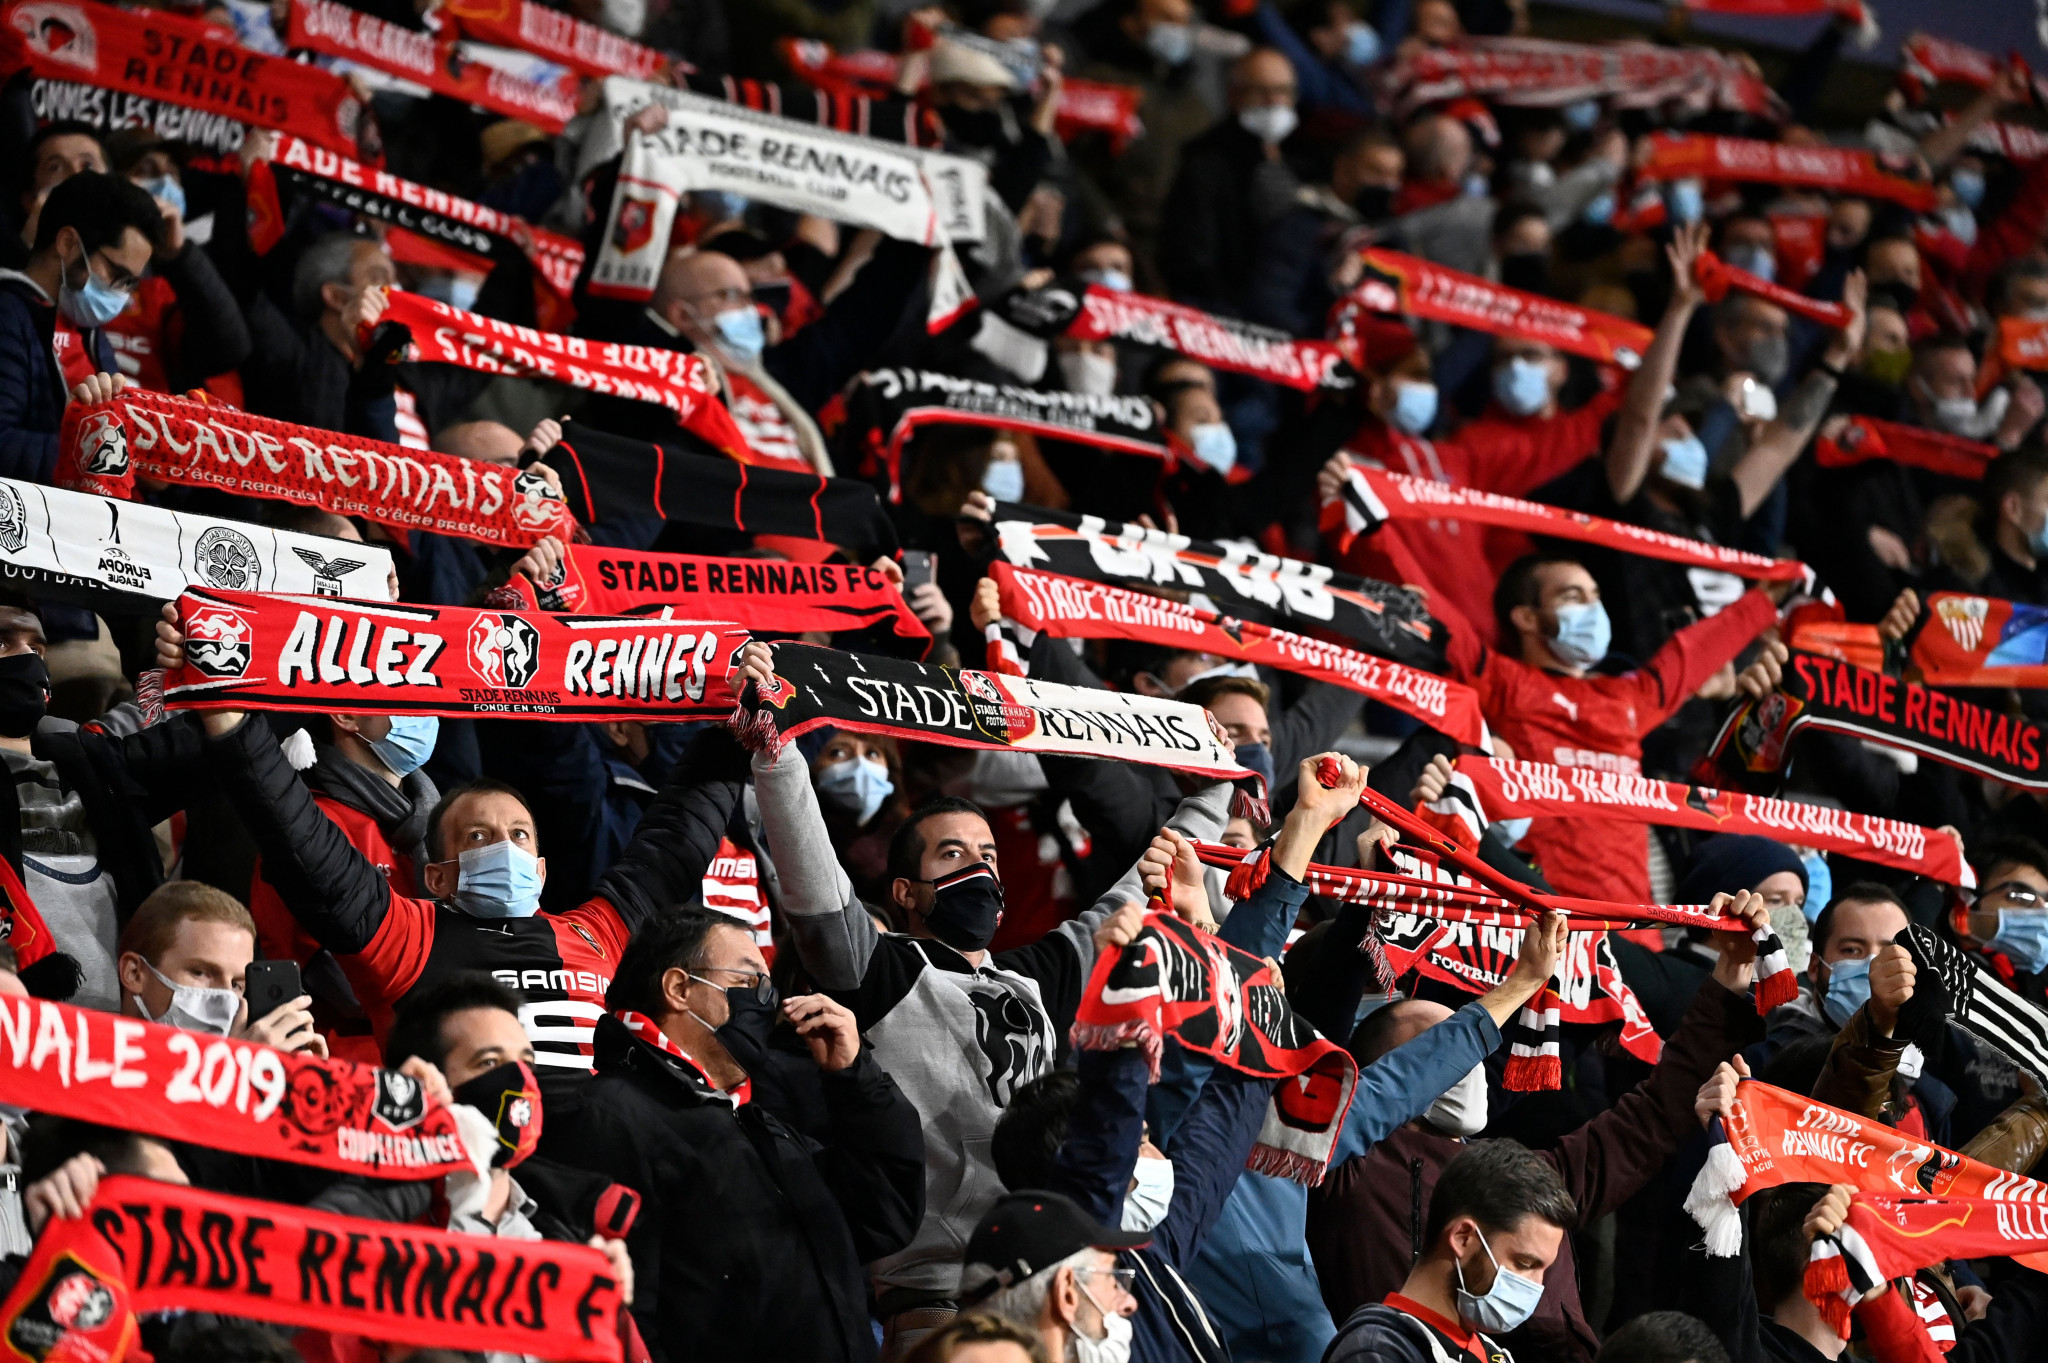 Spectators at the Champions League game between Rennes and Krasnodar were criticised for appearing to breach social distancing rules ©Getty Images